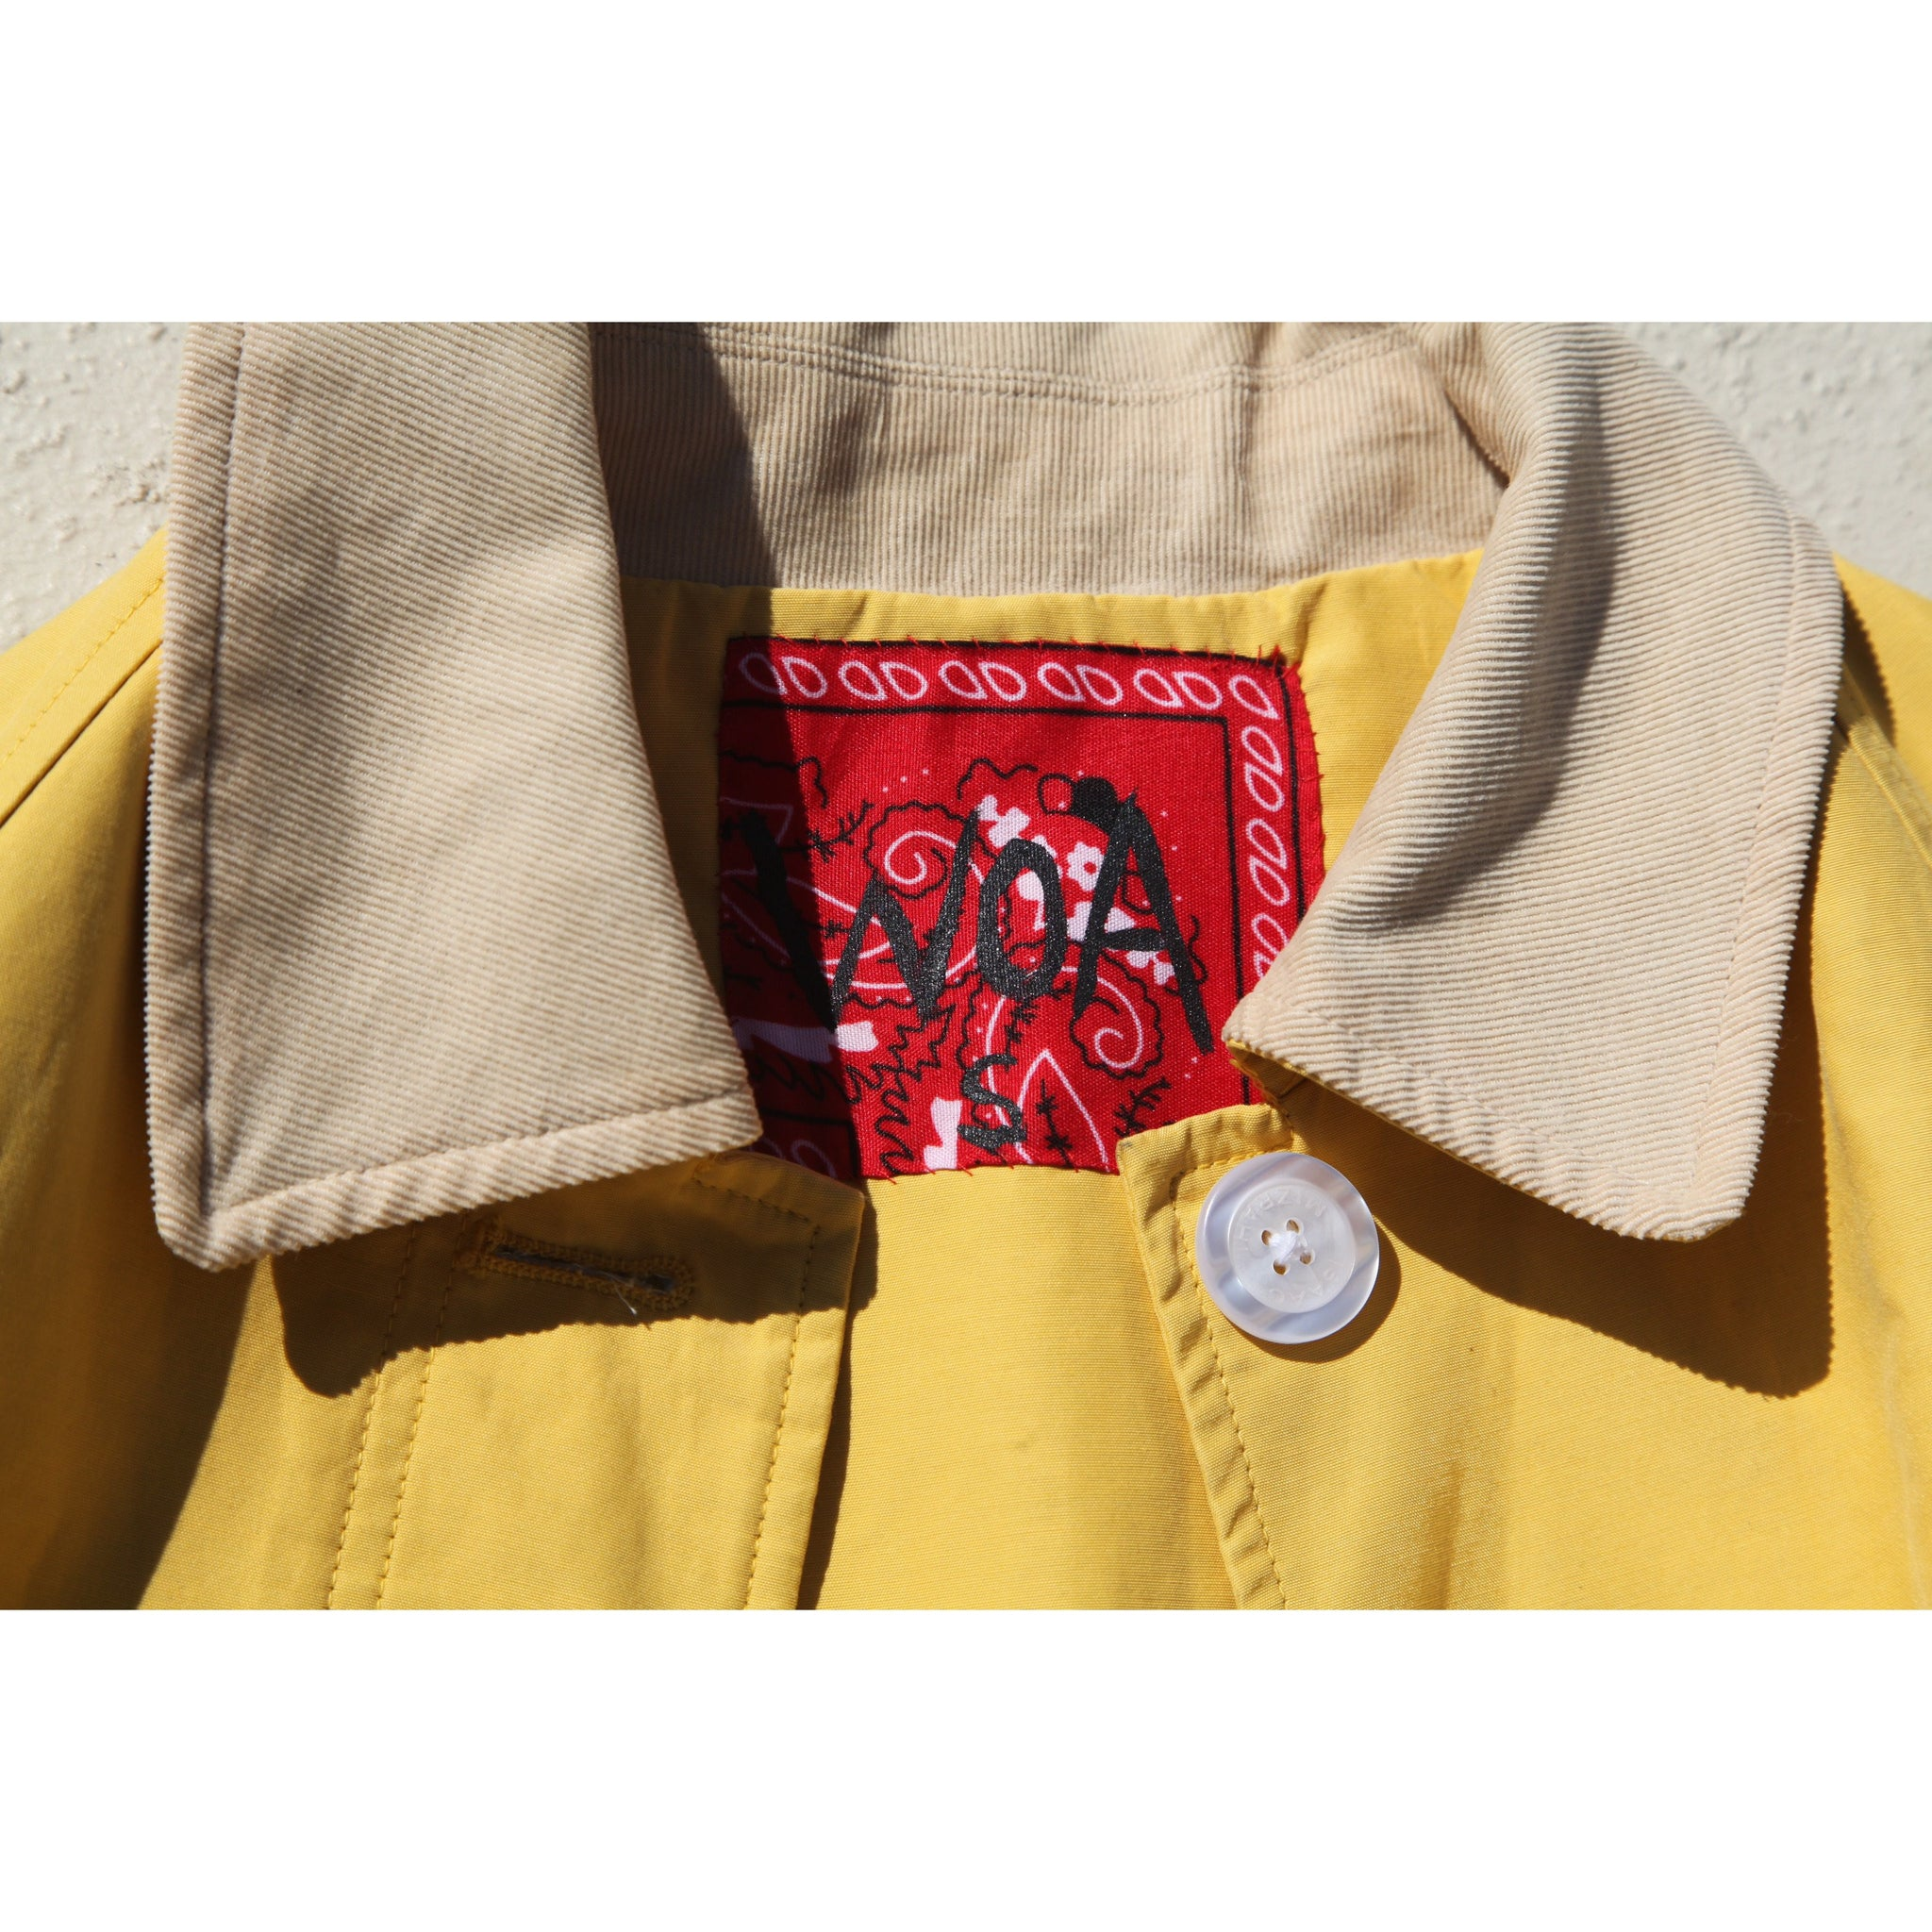 WOA | YELLOW GLORY AND HONOR JACKET